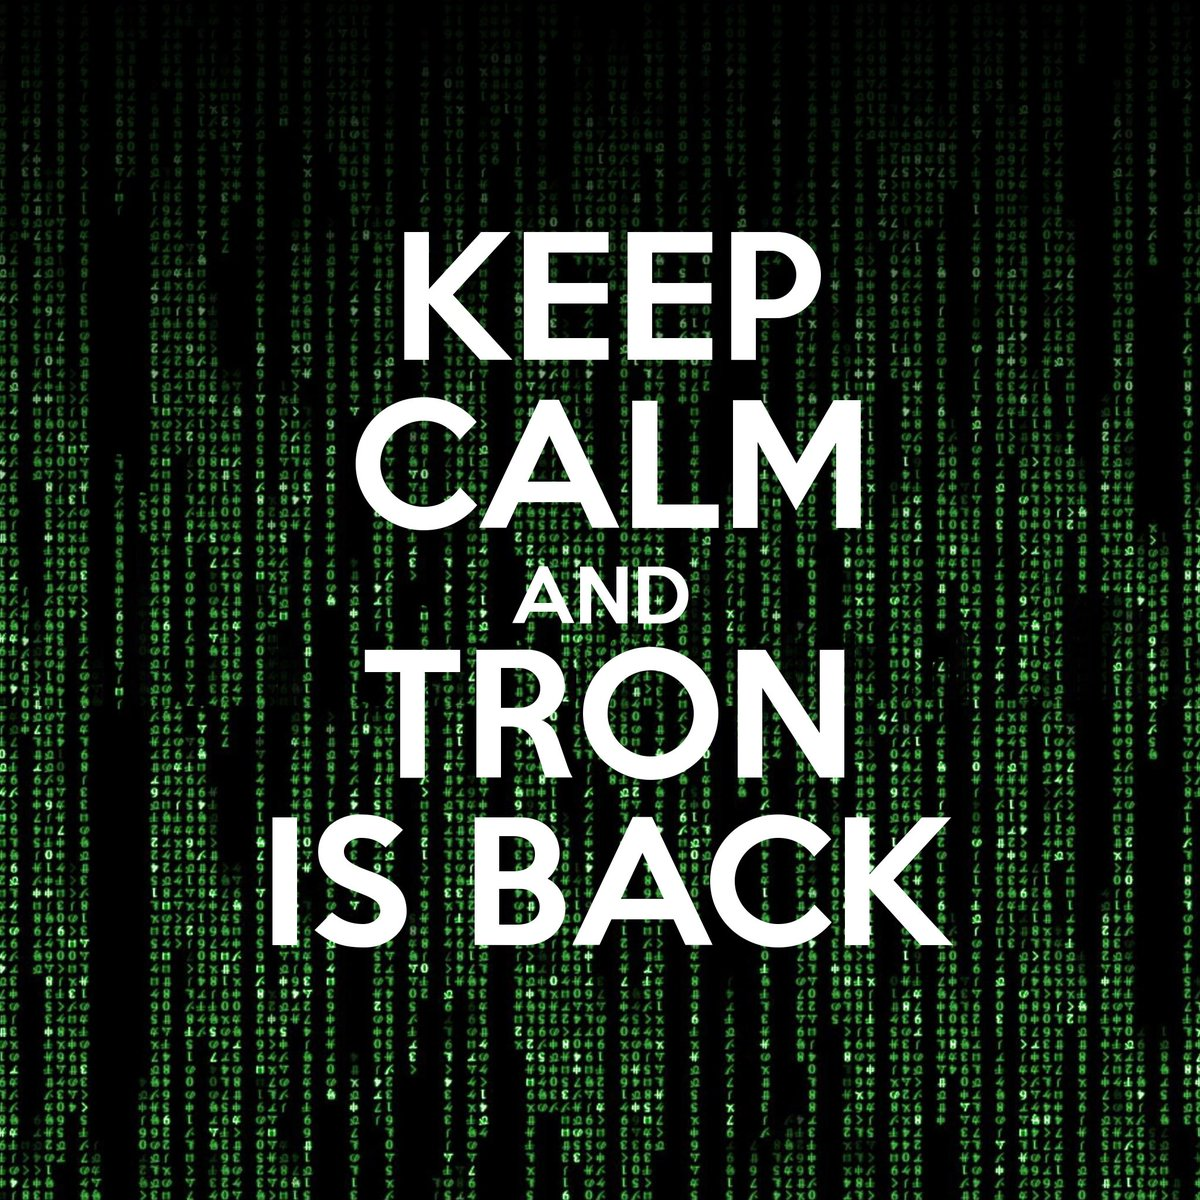 Iphone 6 Wallpaper On Twitter Keepcalm Tron Is Back In The